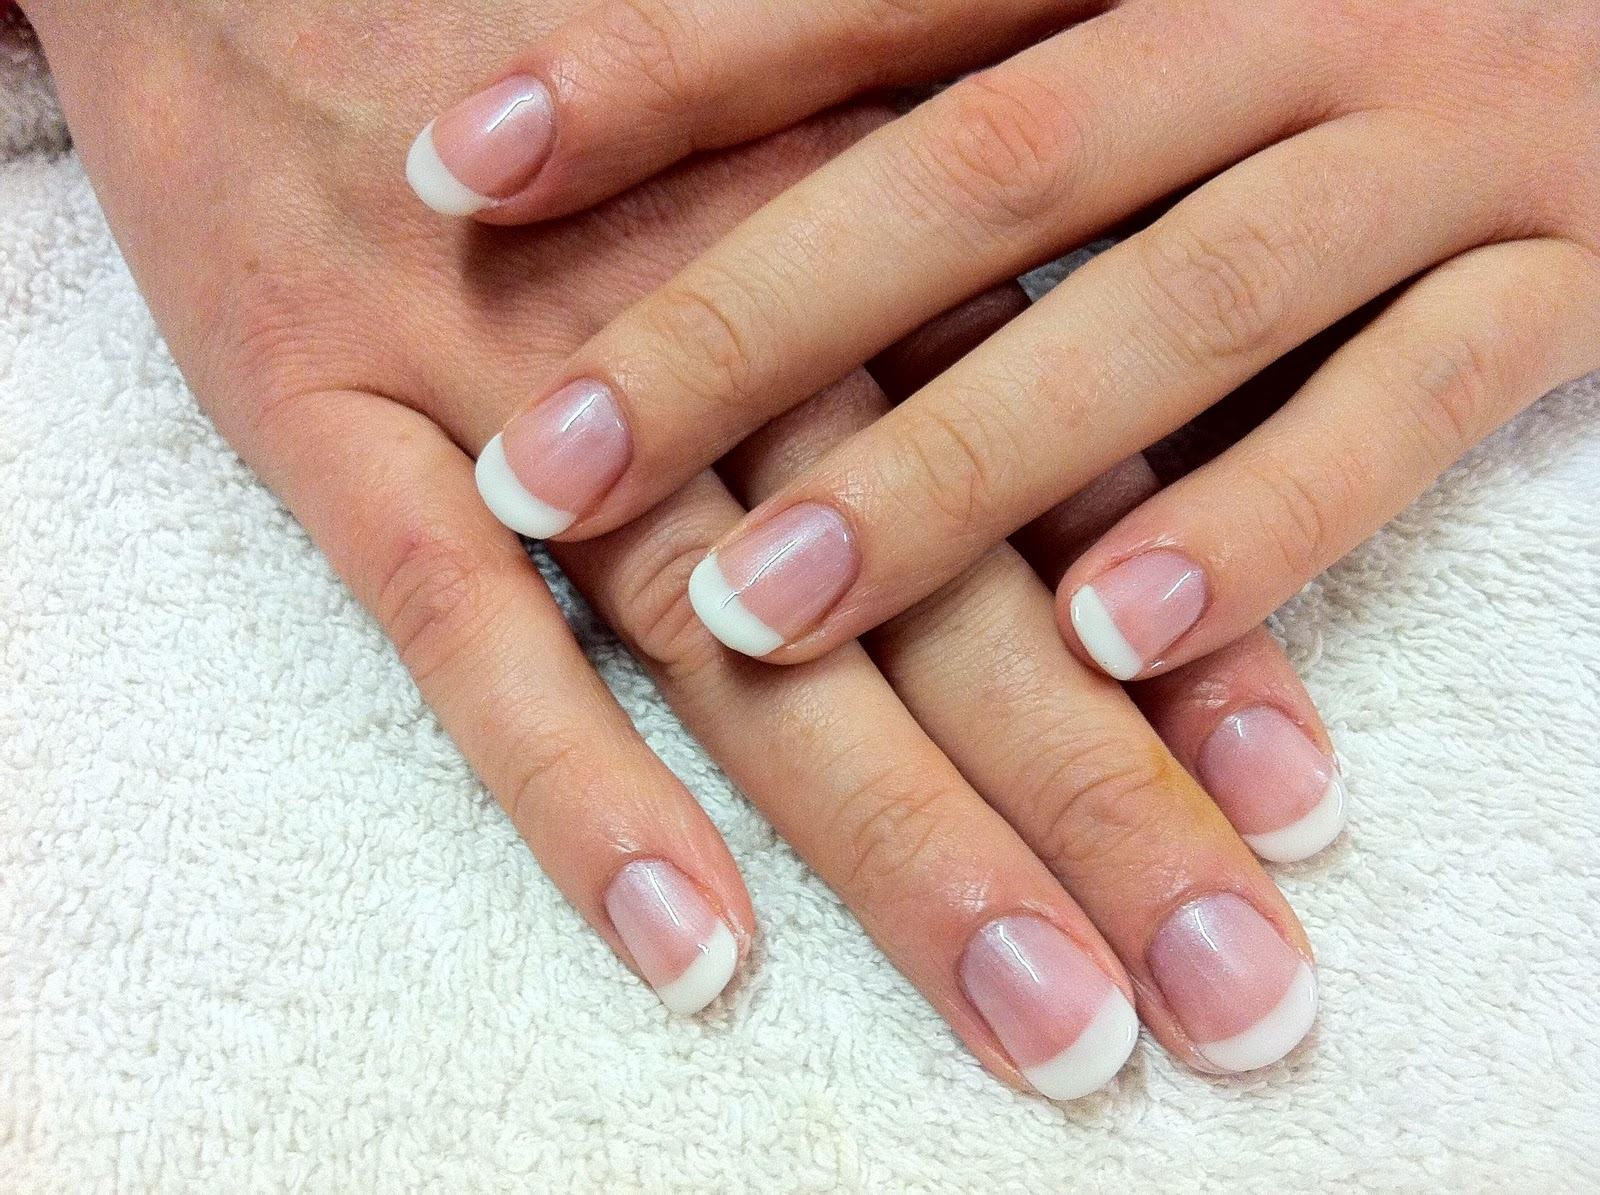 Cnd shellac - french manicure